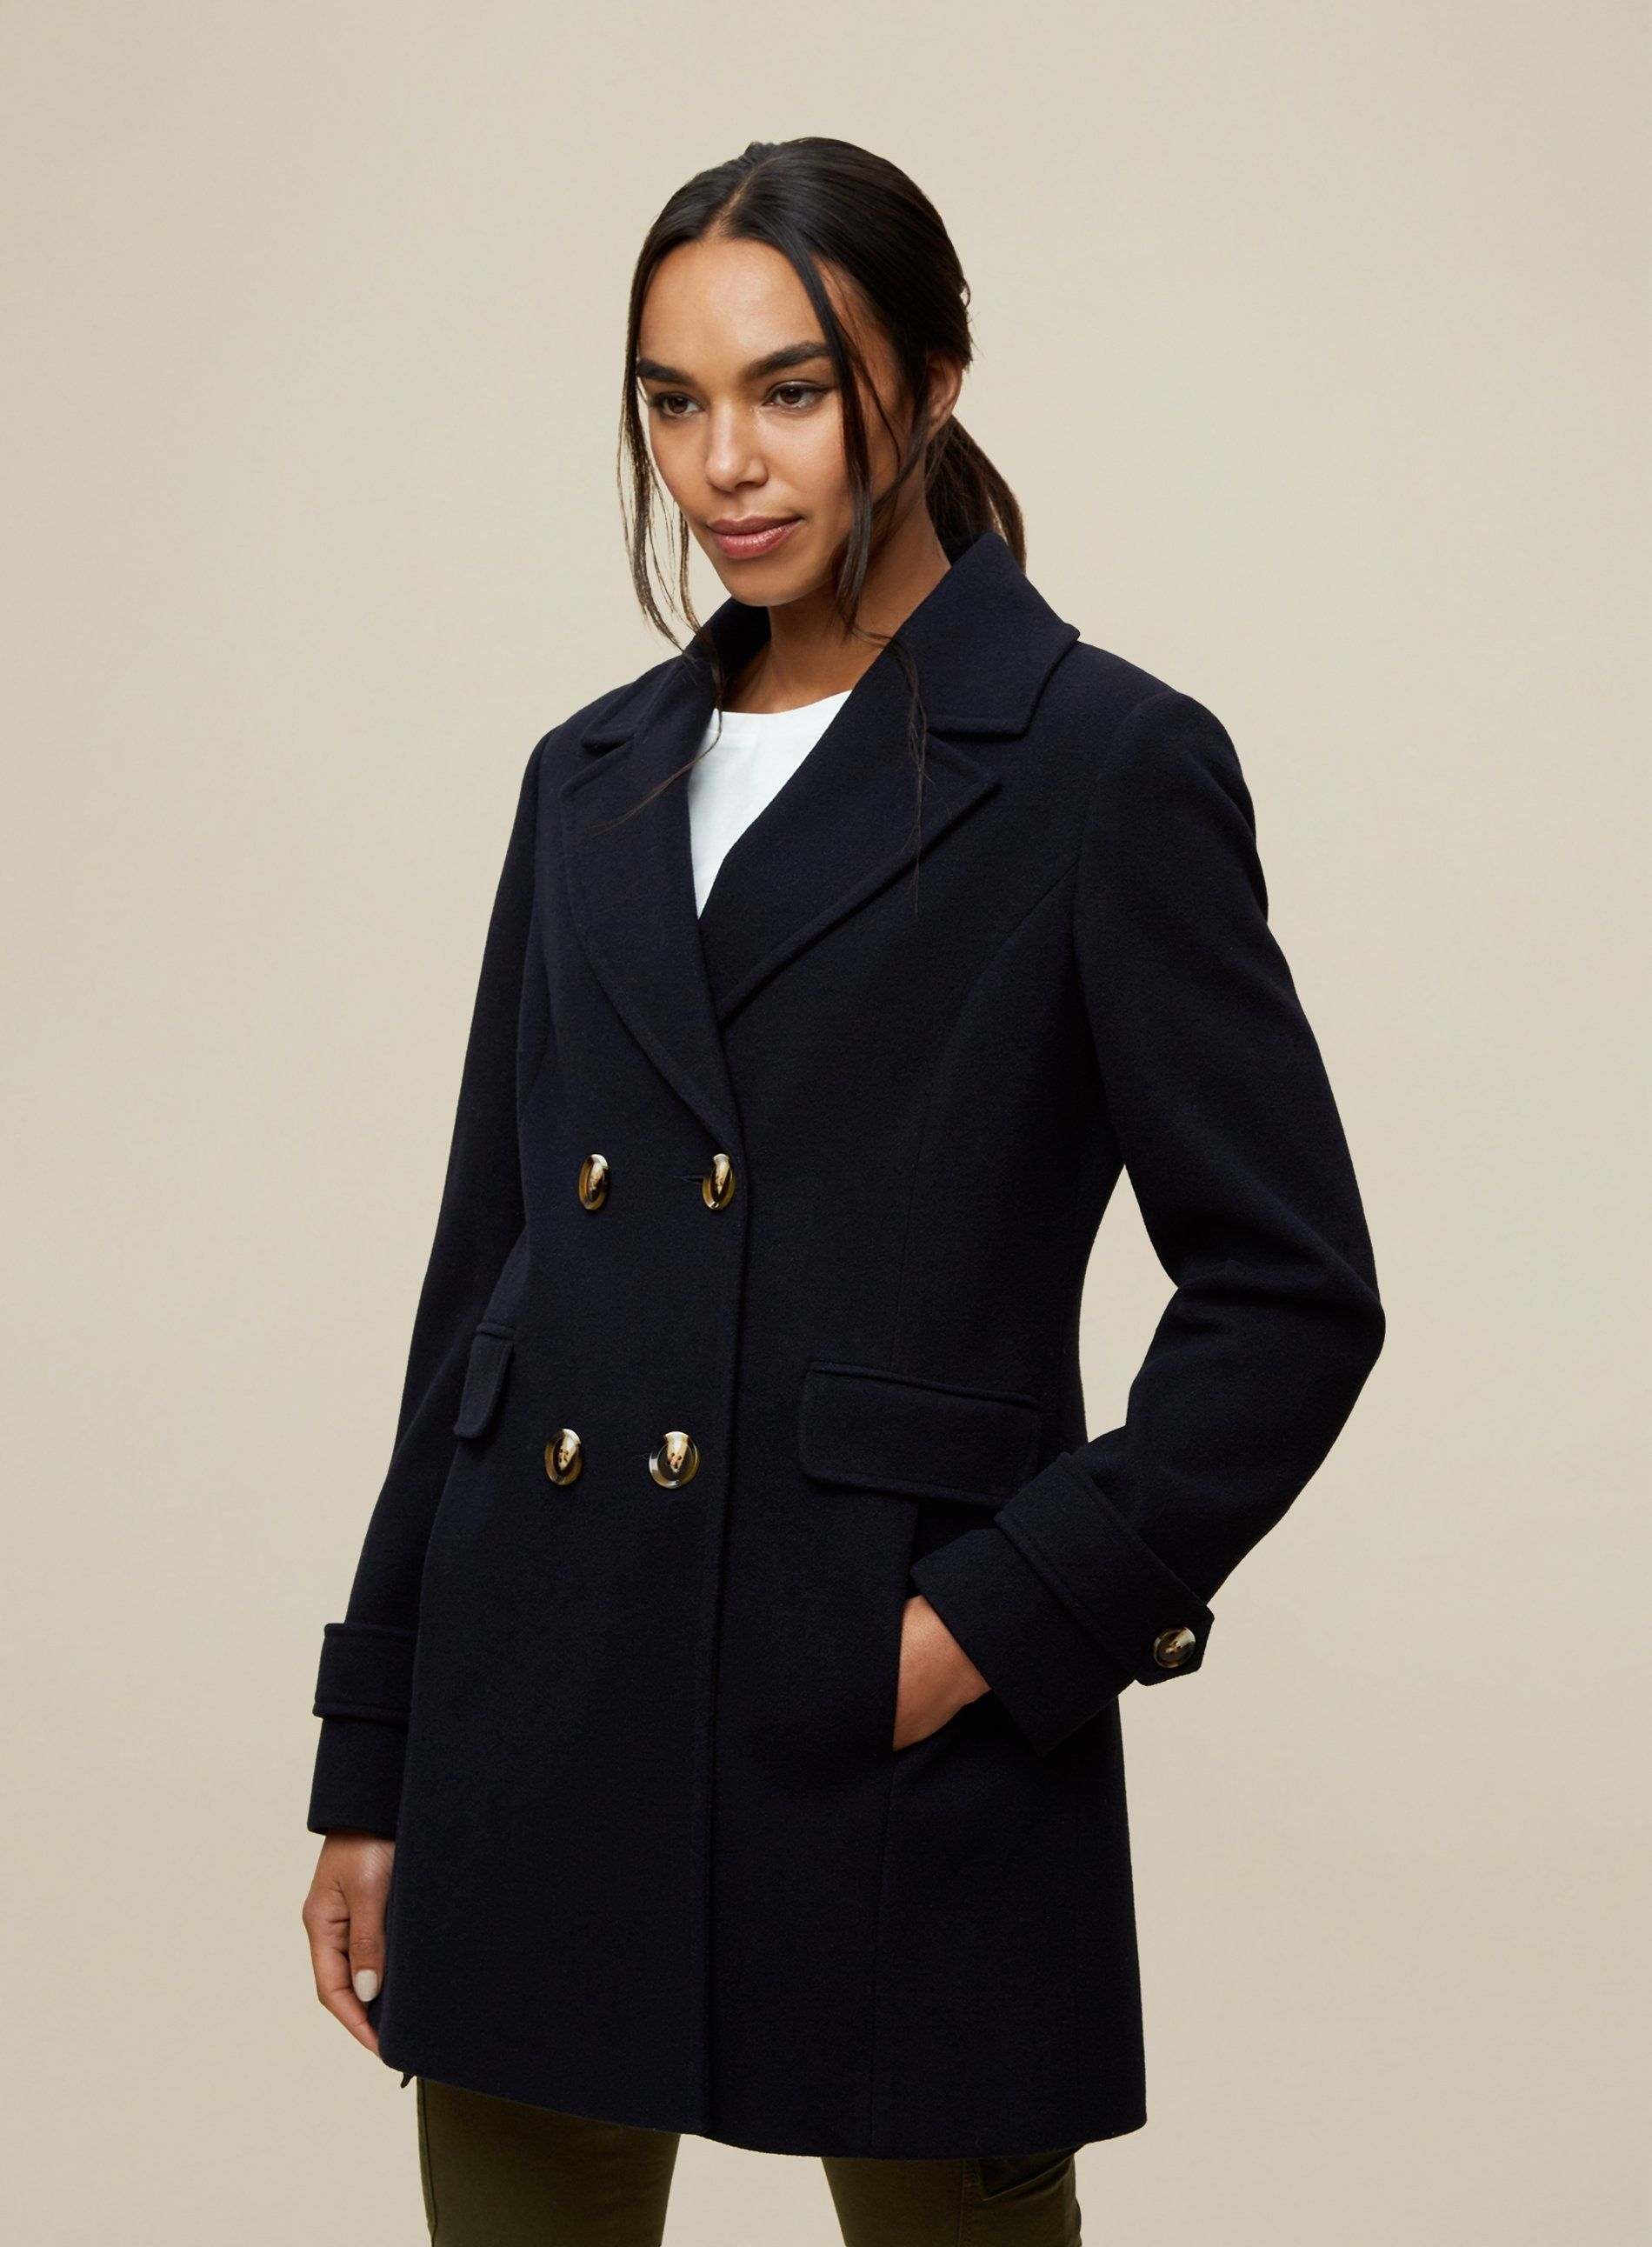 Dorothy Perkins Womens Navy Double Breasted Pea Coat Jacket Outwear Top